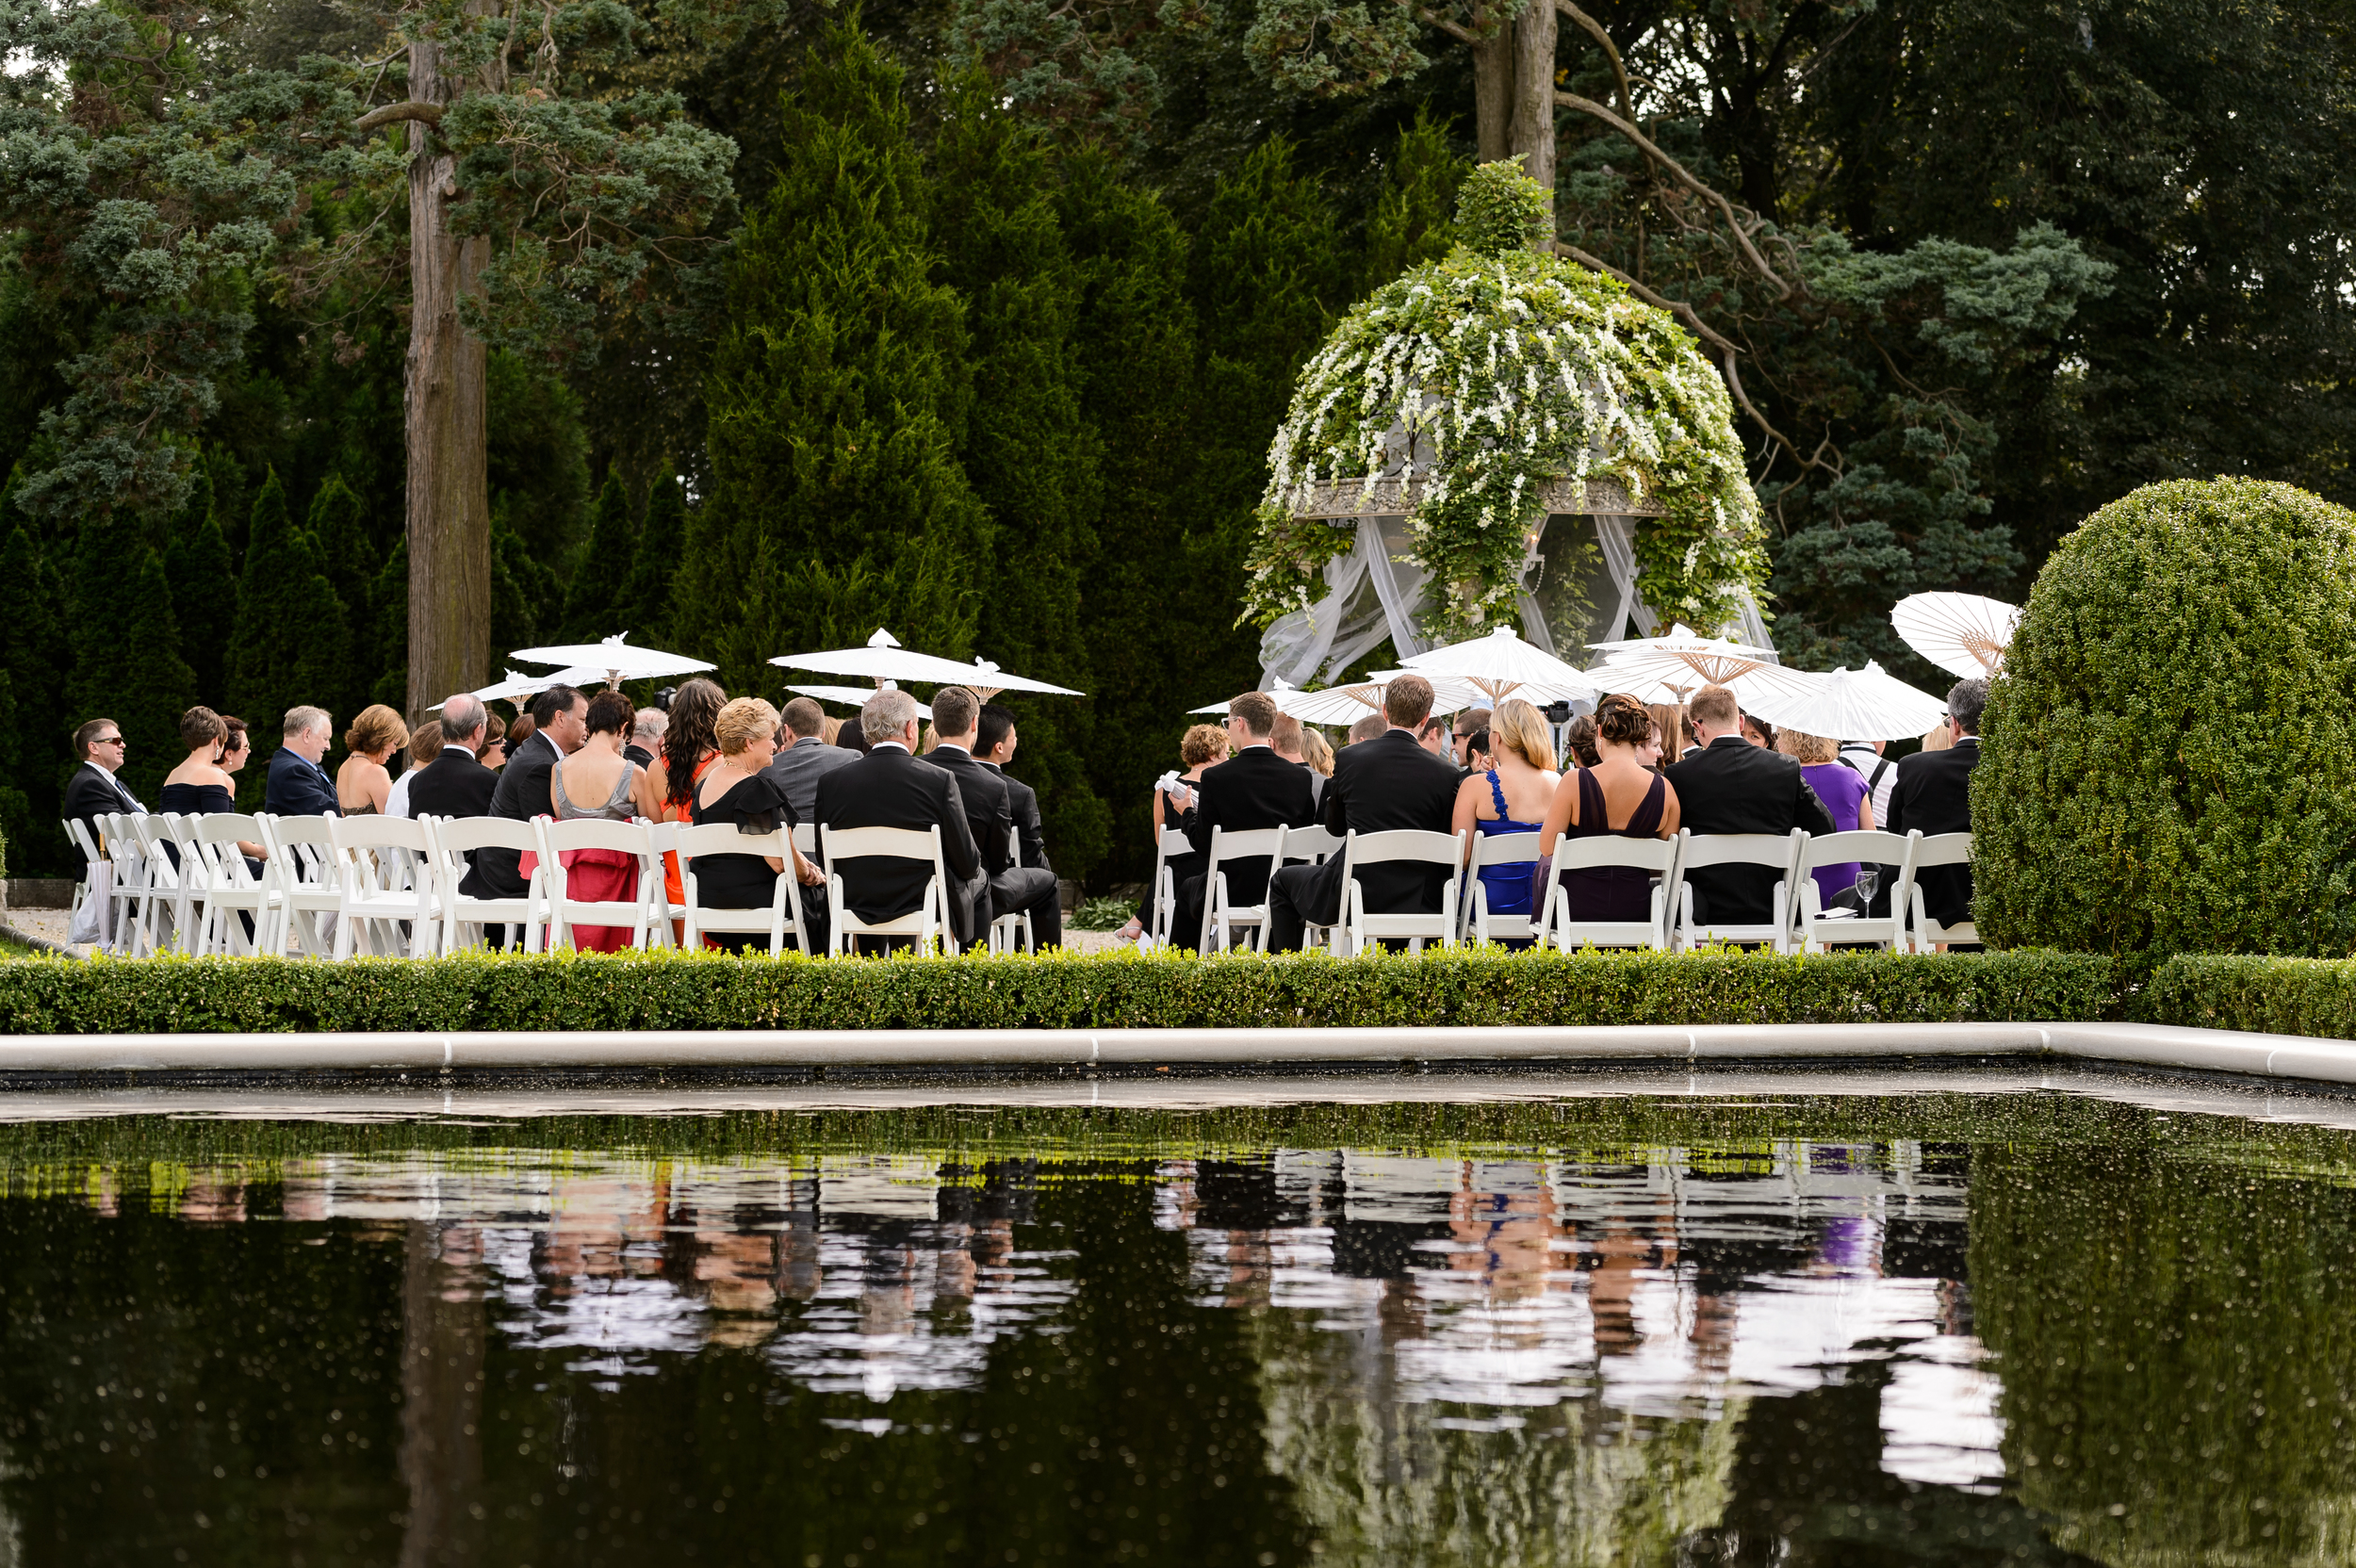 At the far end of the reflection pool, formal gardens, is a gazebo....AT this perfect little place (according to the Melius family), they do not recall ever having a wedding at this amazing spot!  It is a  perfect spot to get married.  WE brought in a chandelier, some fabric, and gave the guests parasols.... Love it!